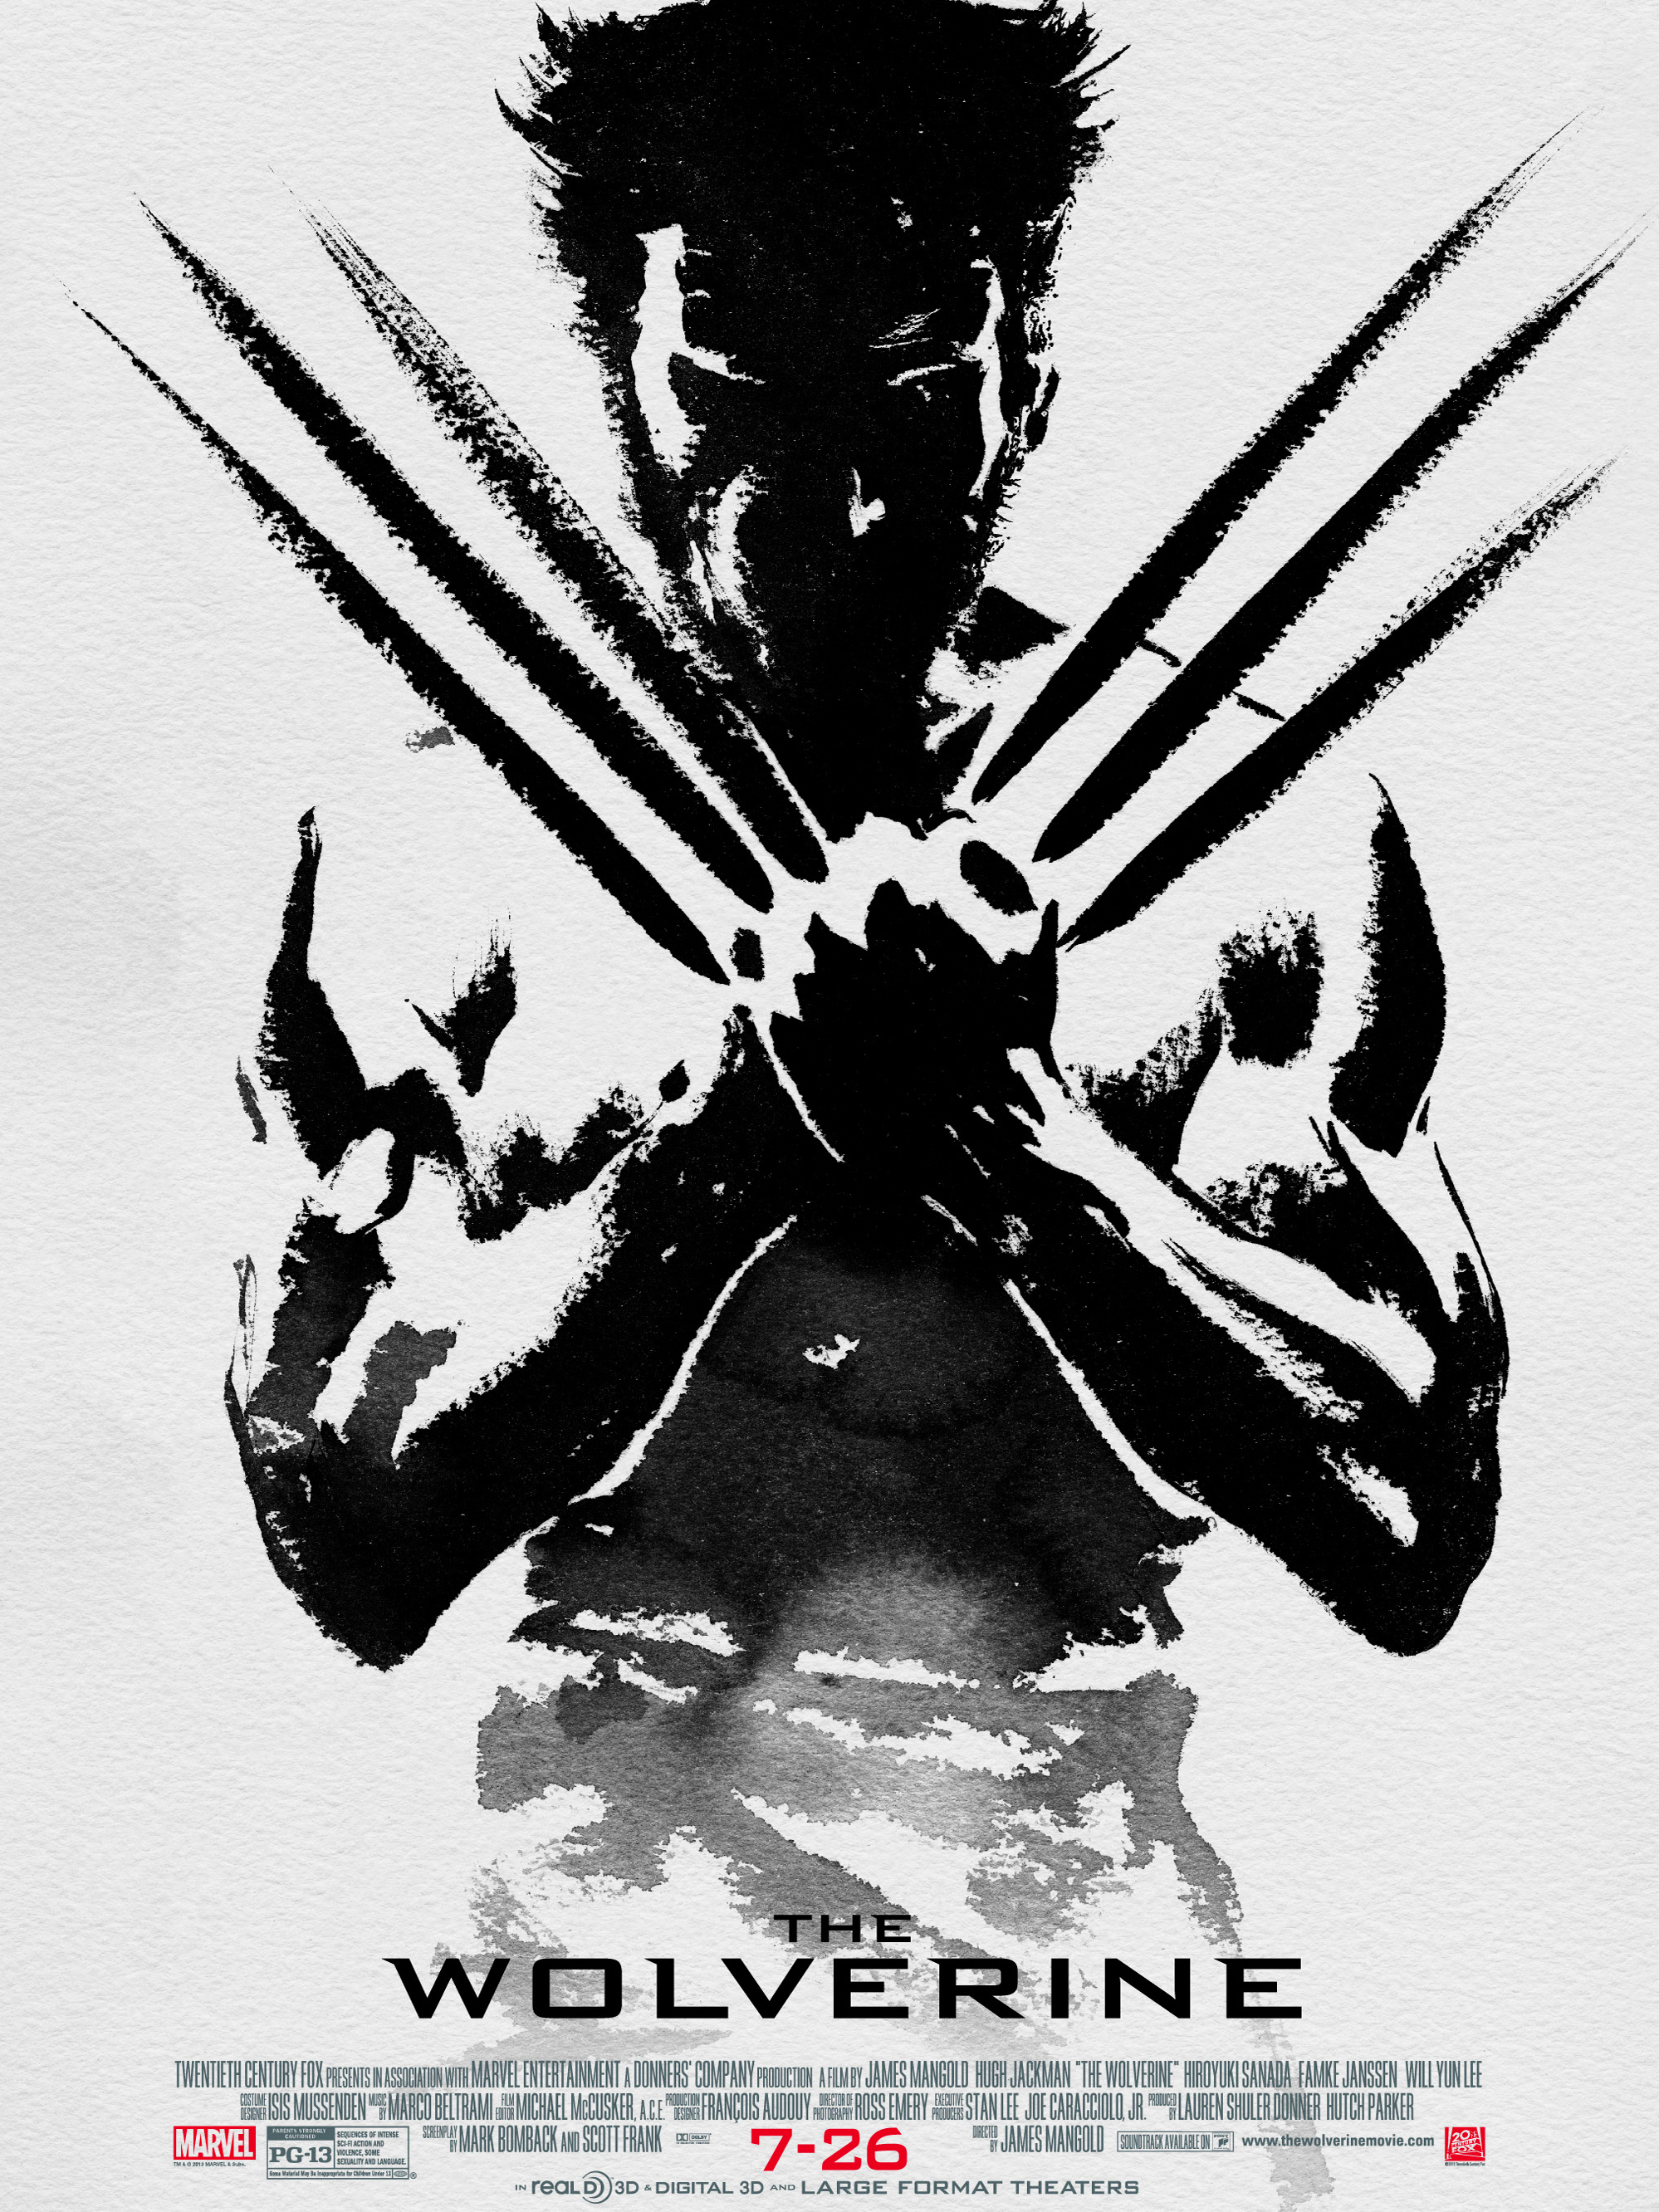 The Wolverine / Twentieth Century Fox presents in association with Marvel Entertainment &#59; a Donners